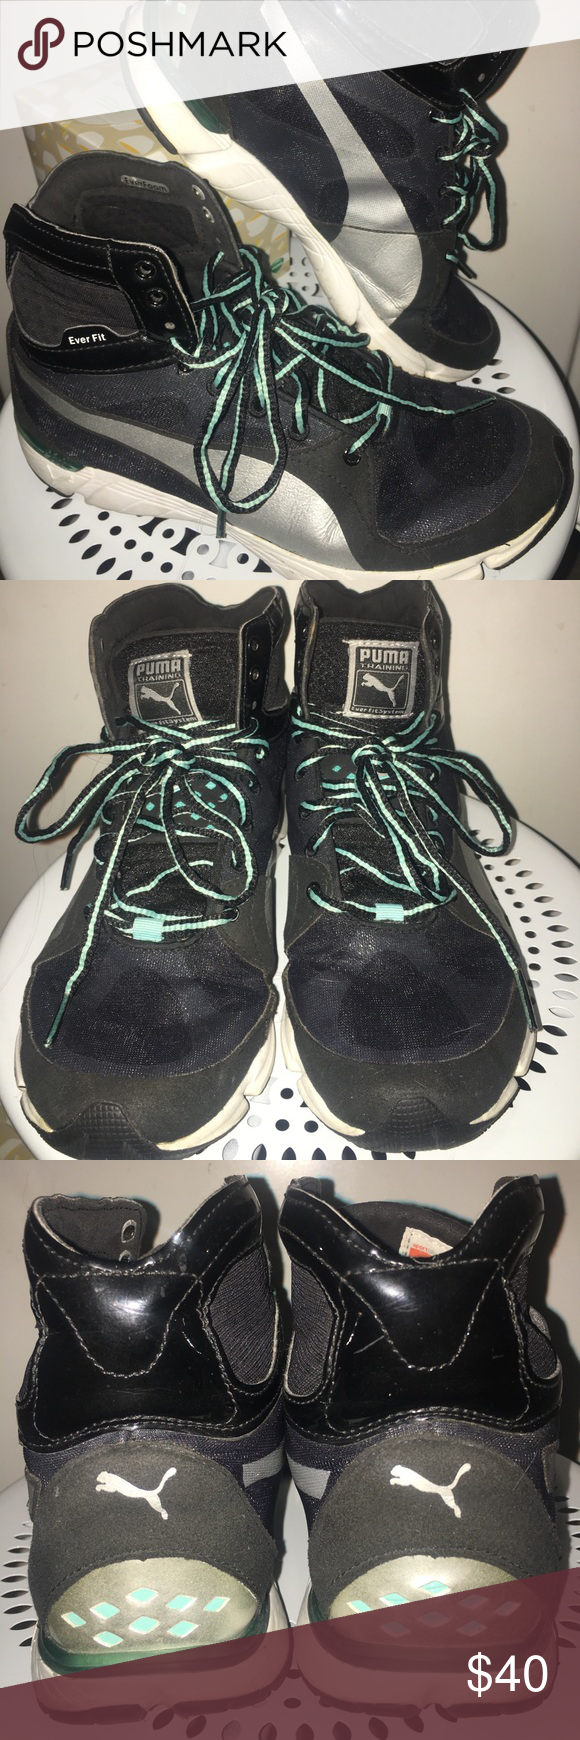 PUMA Ever Fit Training Athletic Shoes